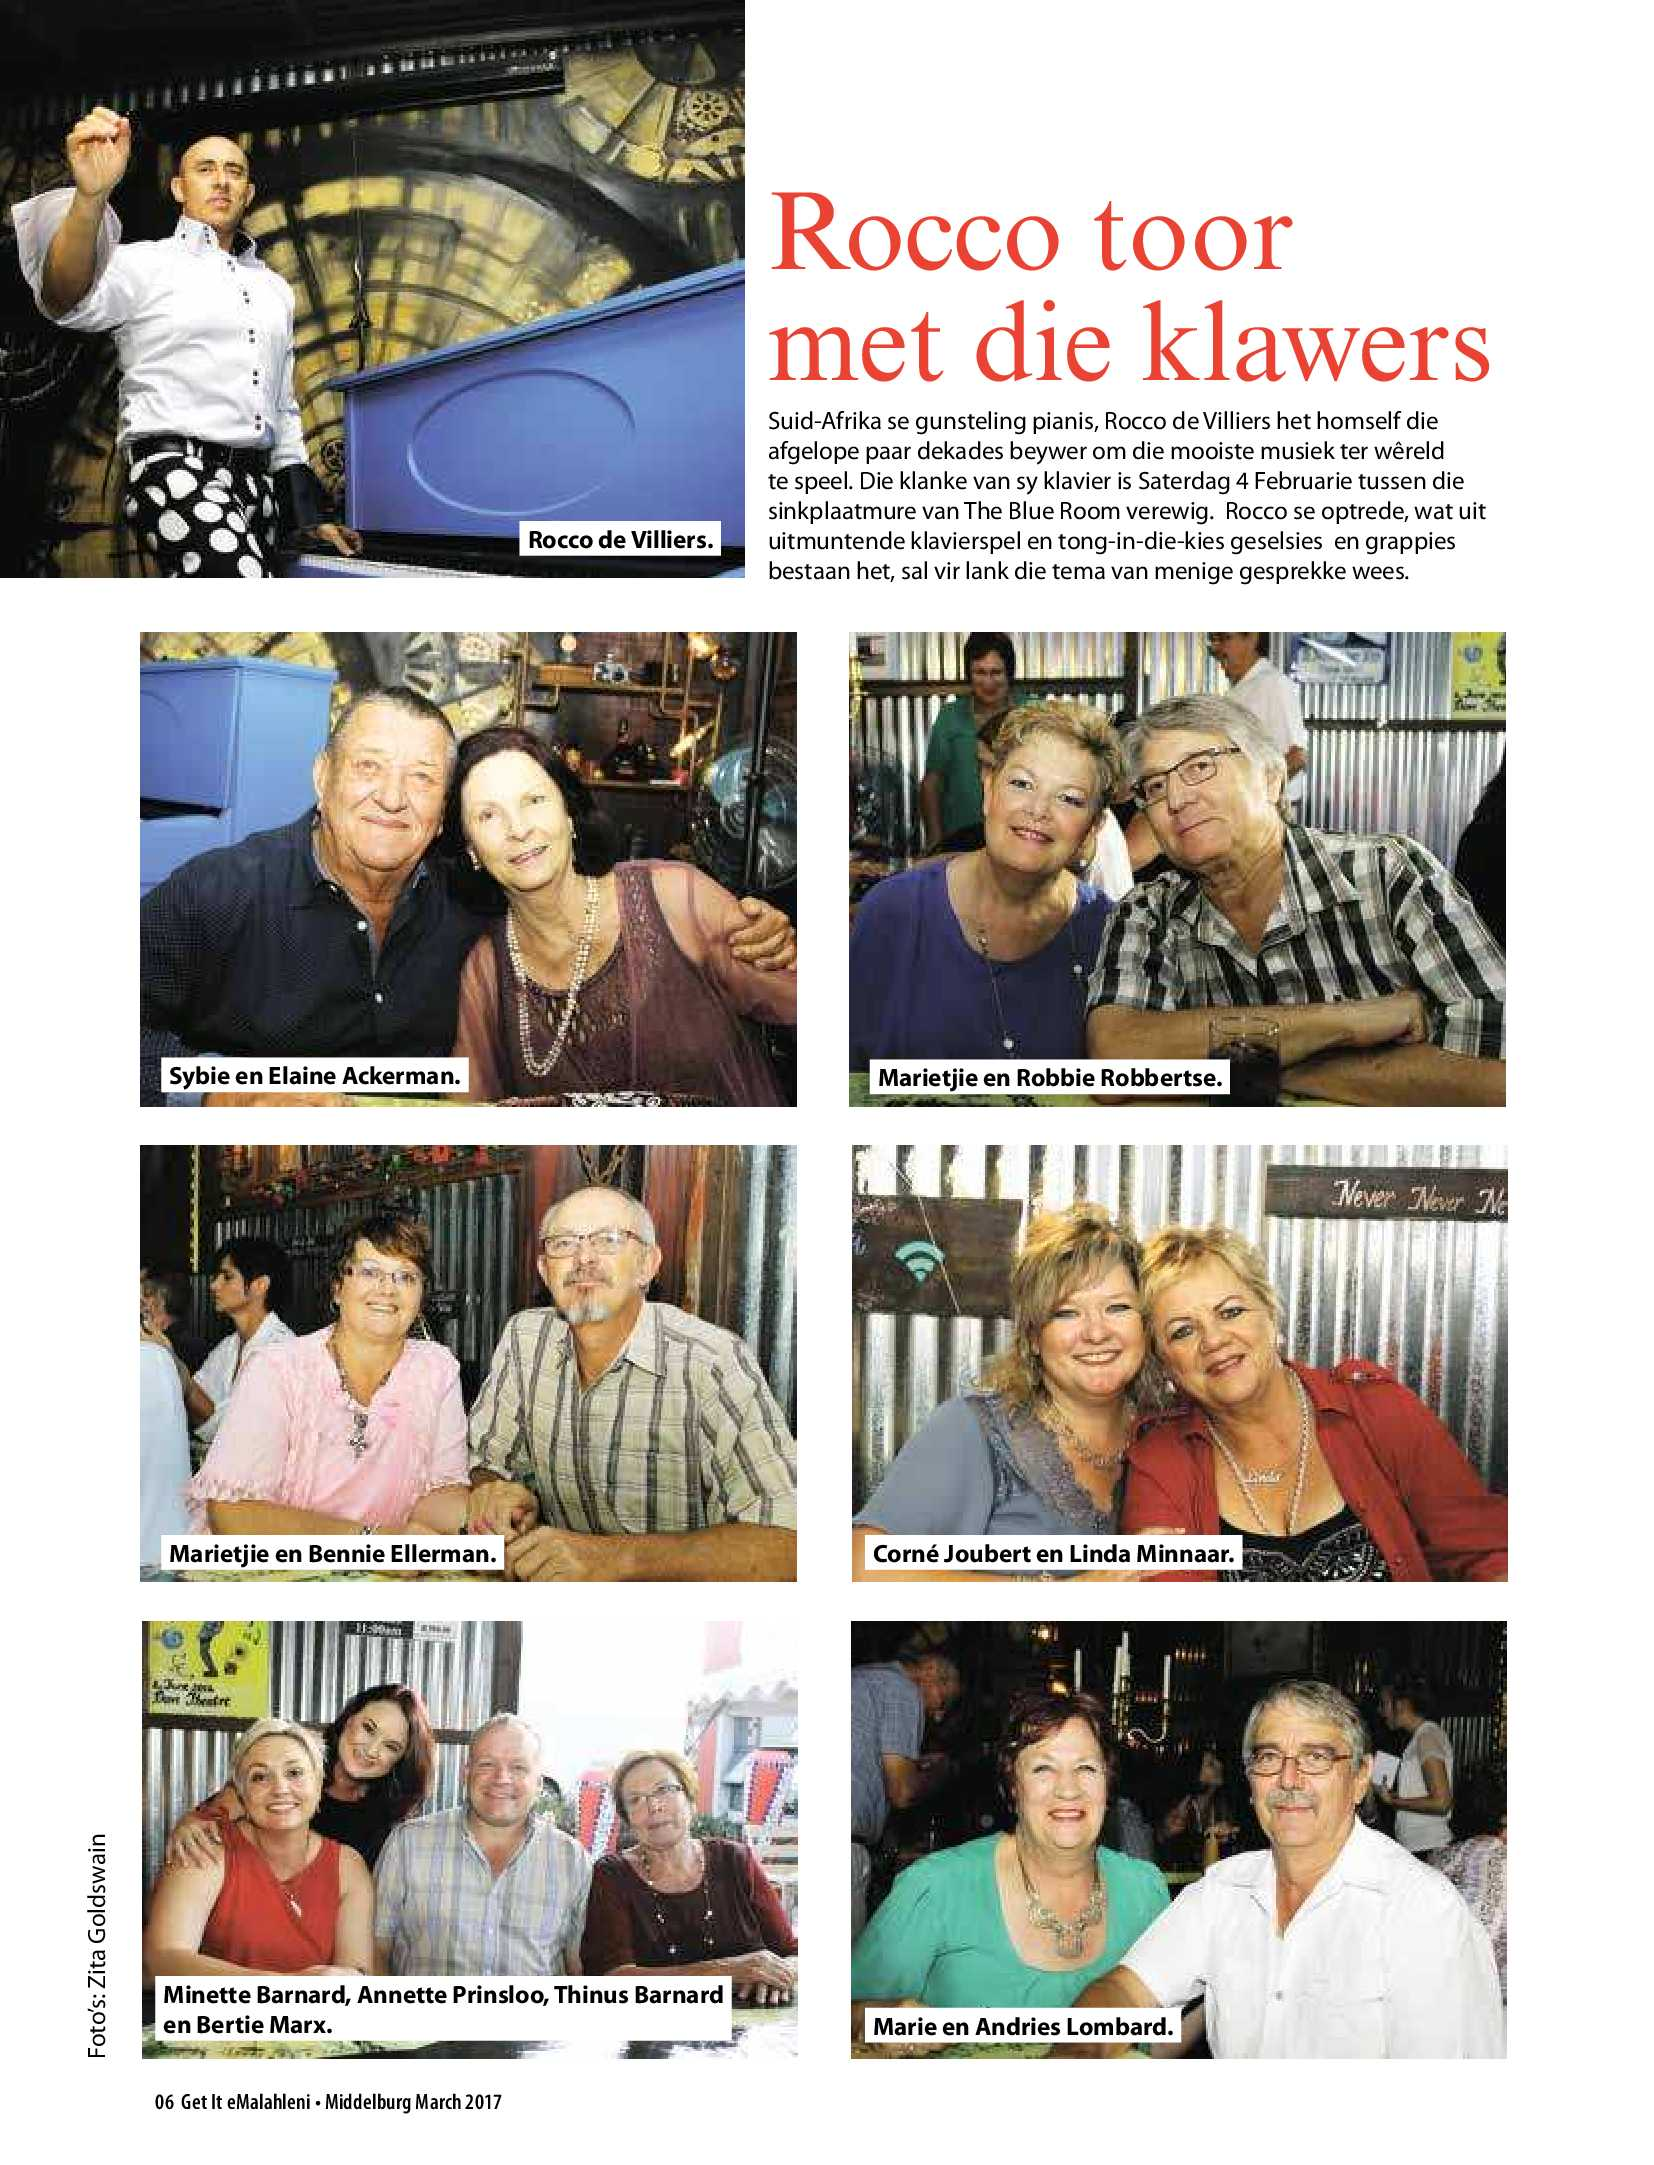 get-middelburg-march-2017-epapers-page-8